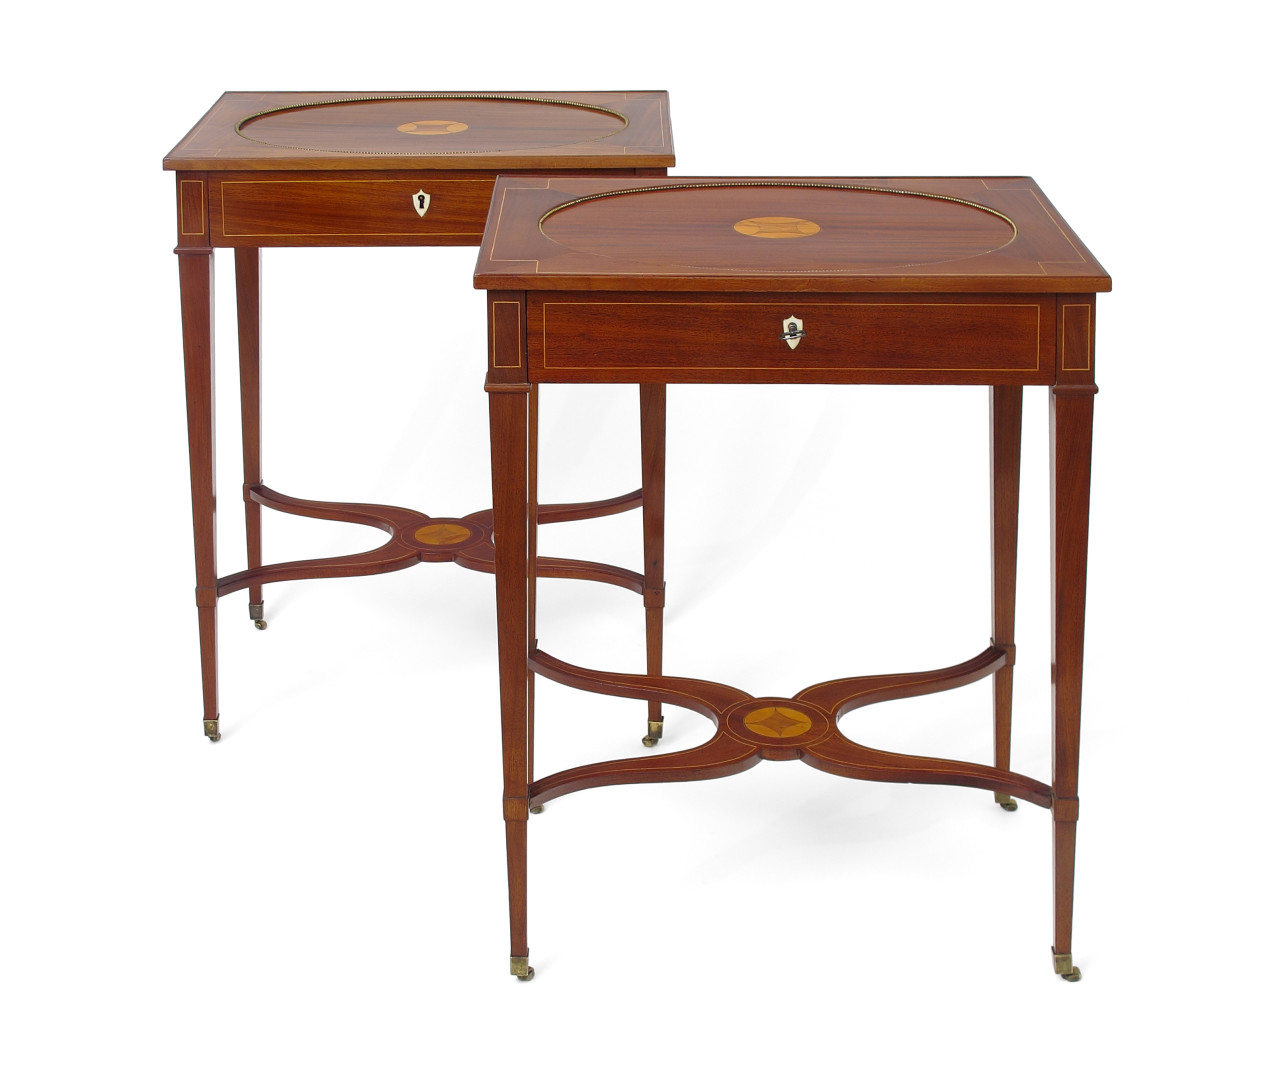 A pair of late Gustavian sewing tables